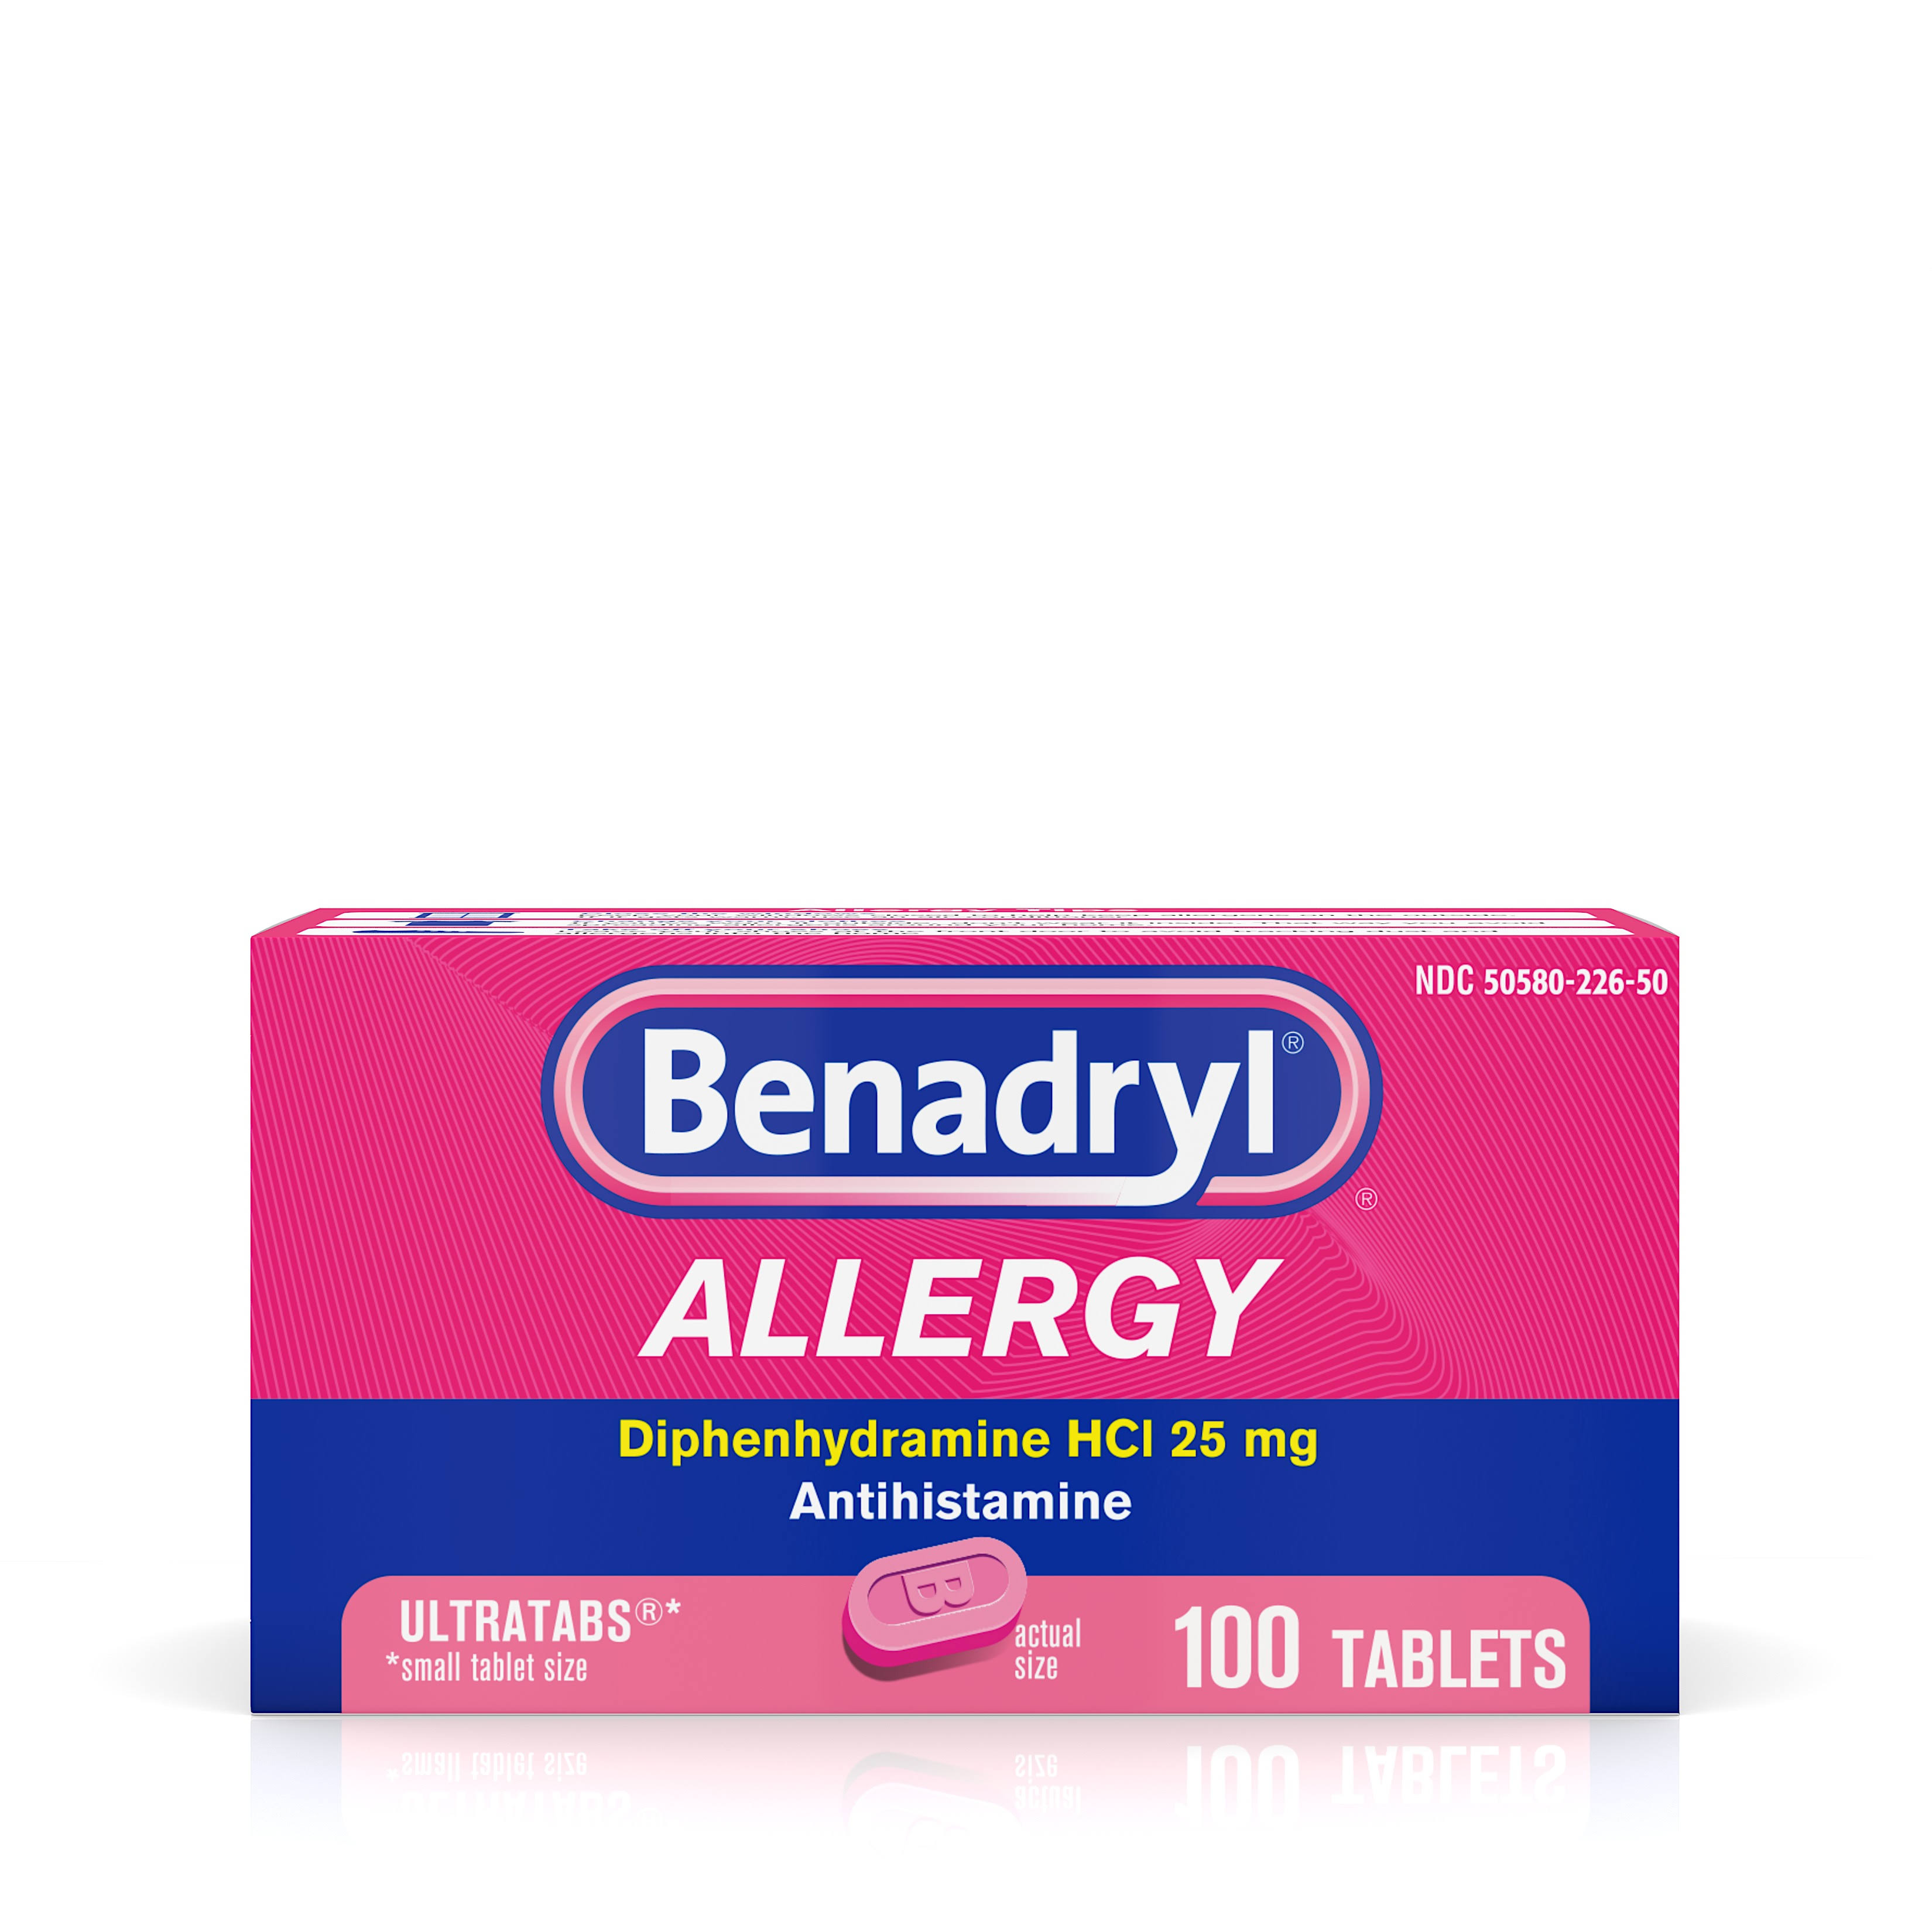 Benadryl Allergy Diphenhydramine HCI Tablets - 100 Pack